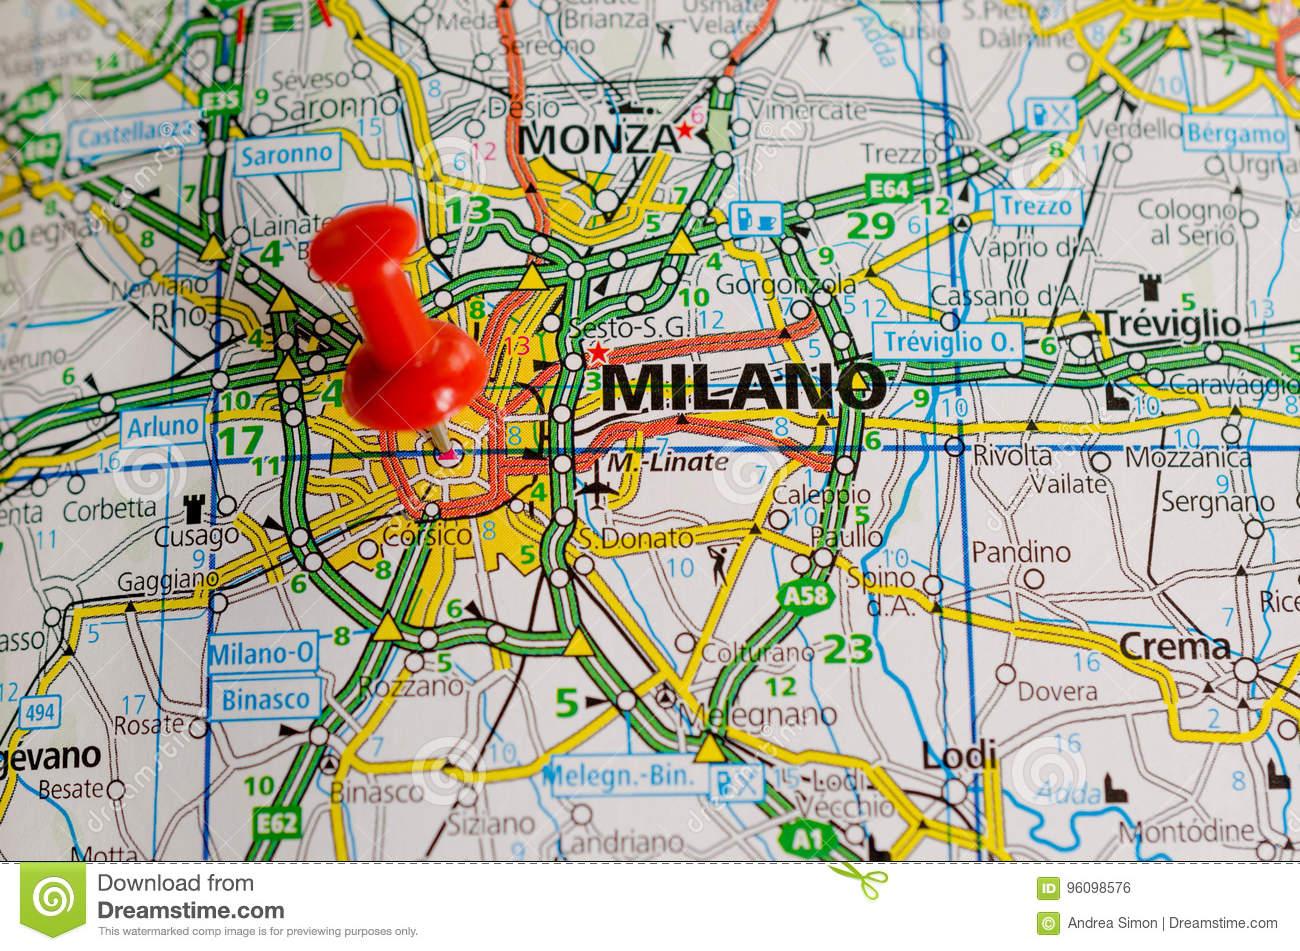 Milan on map stock photo. Image of milano, atlas, gorgonzola - 96098576